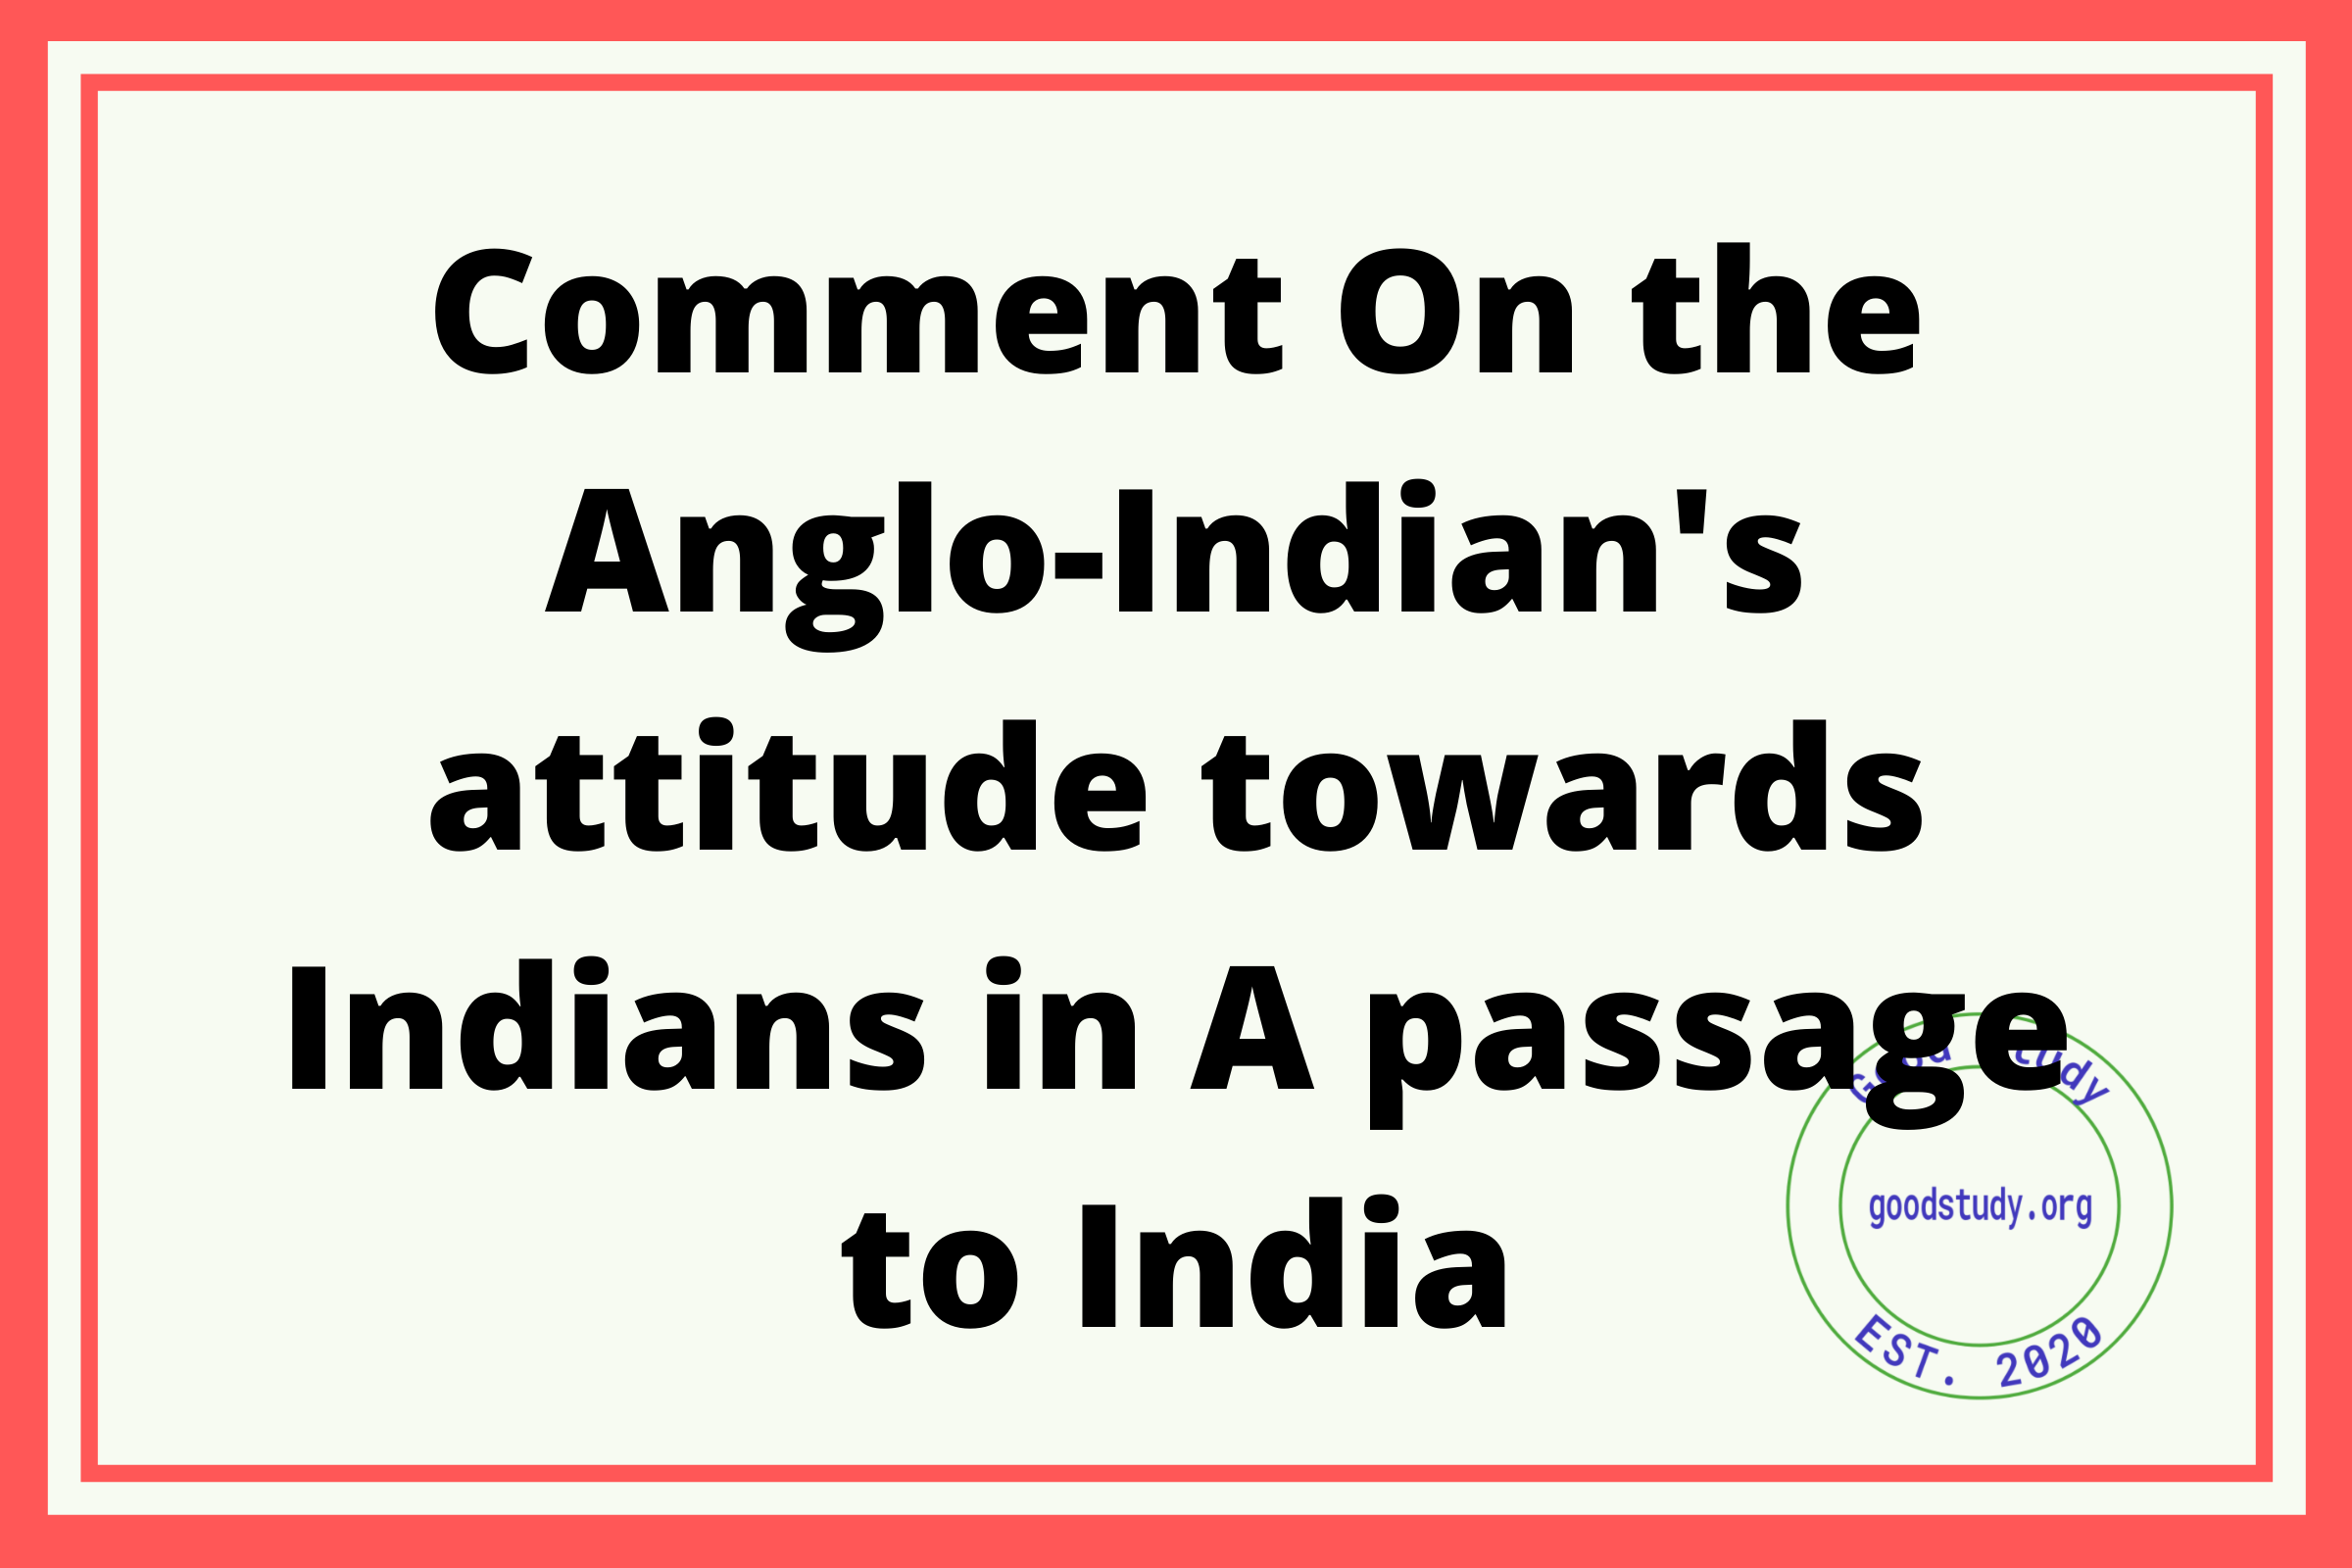 Anglo-Indian's attitude